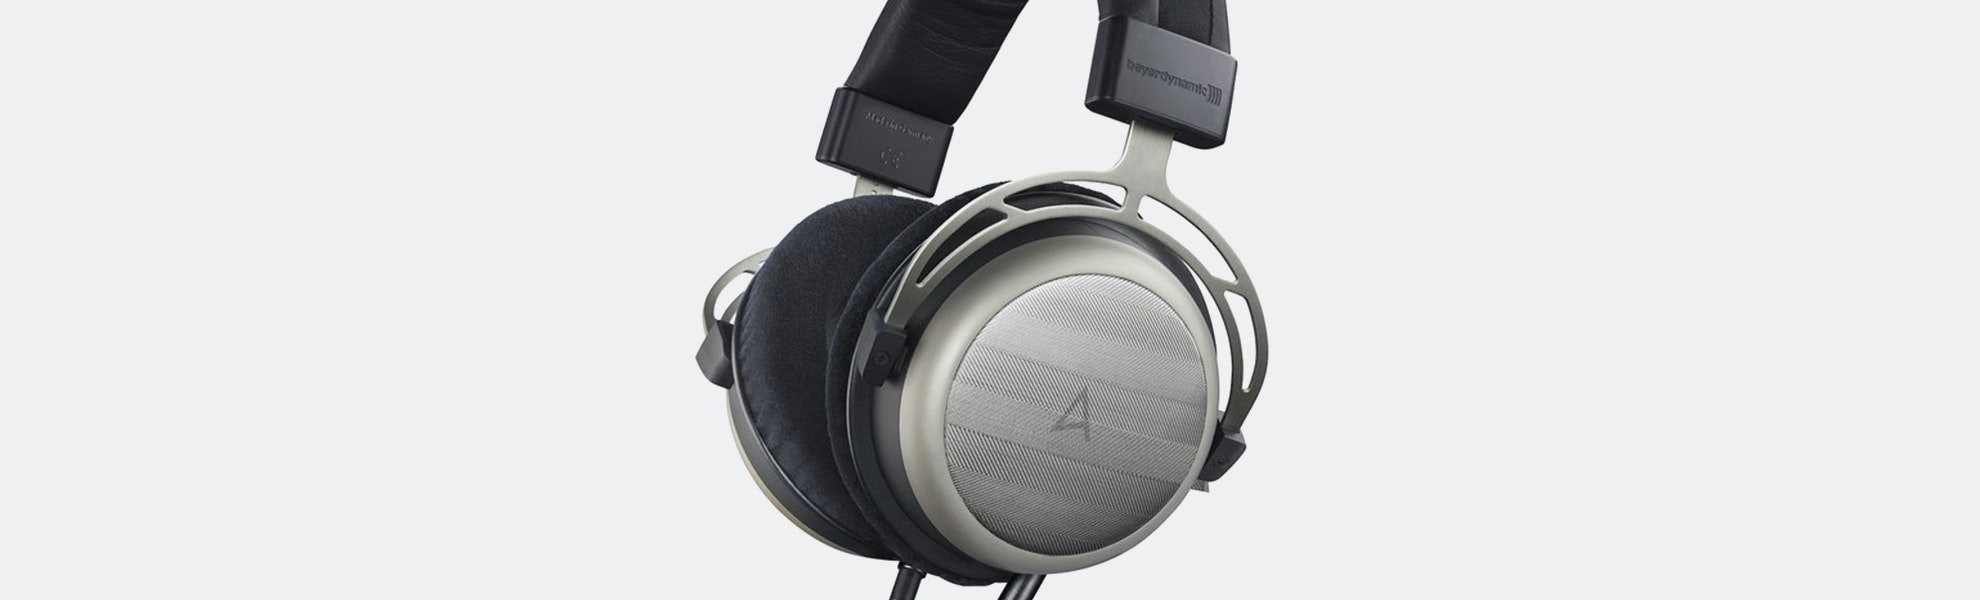 Astell&Kern Beyerdynamic AK T1p Headphones